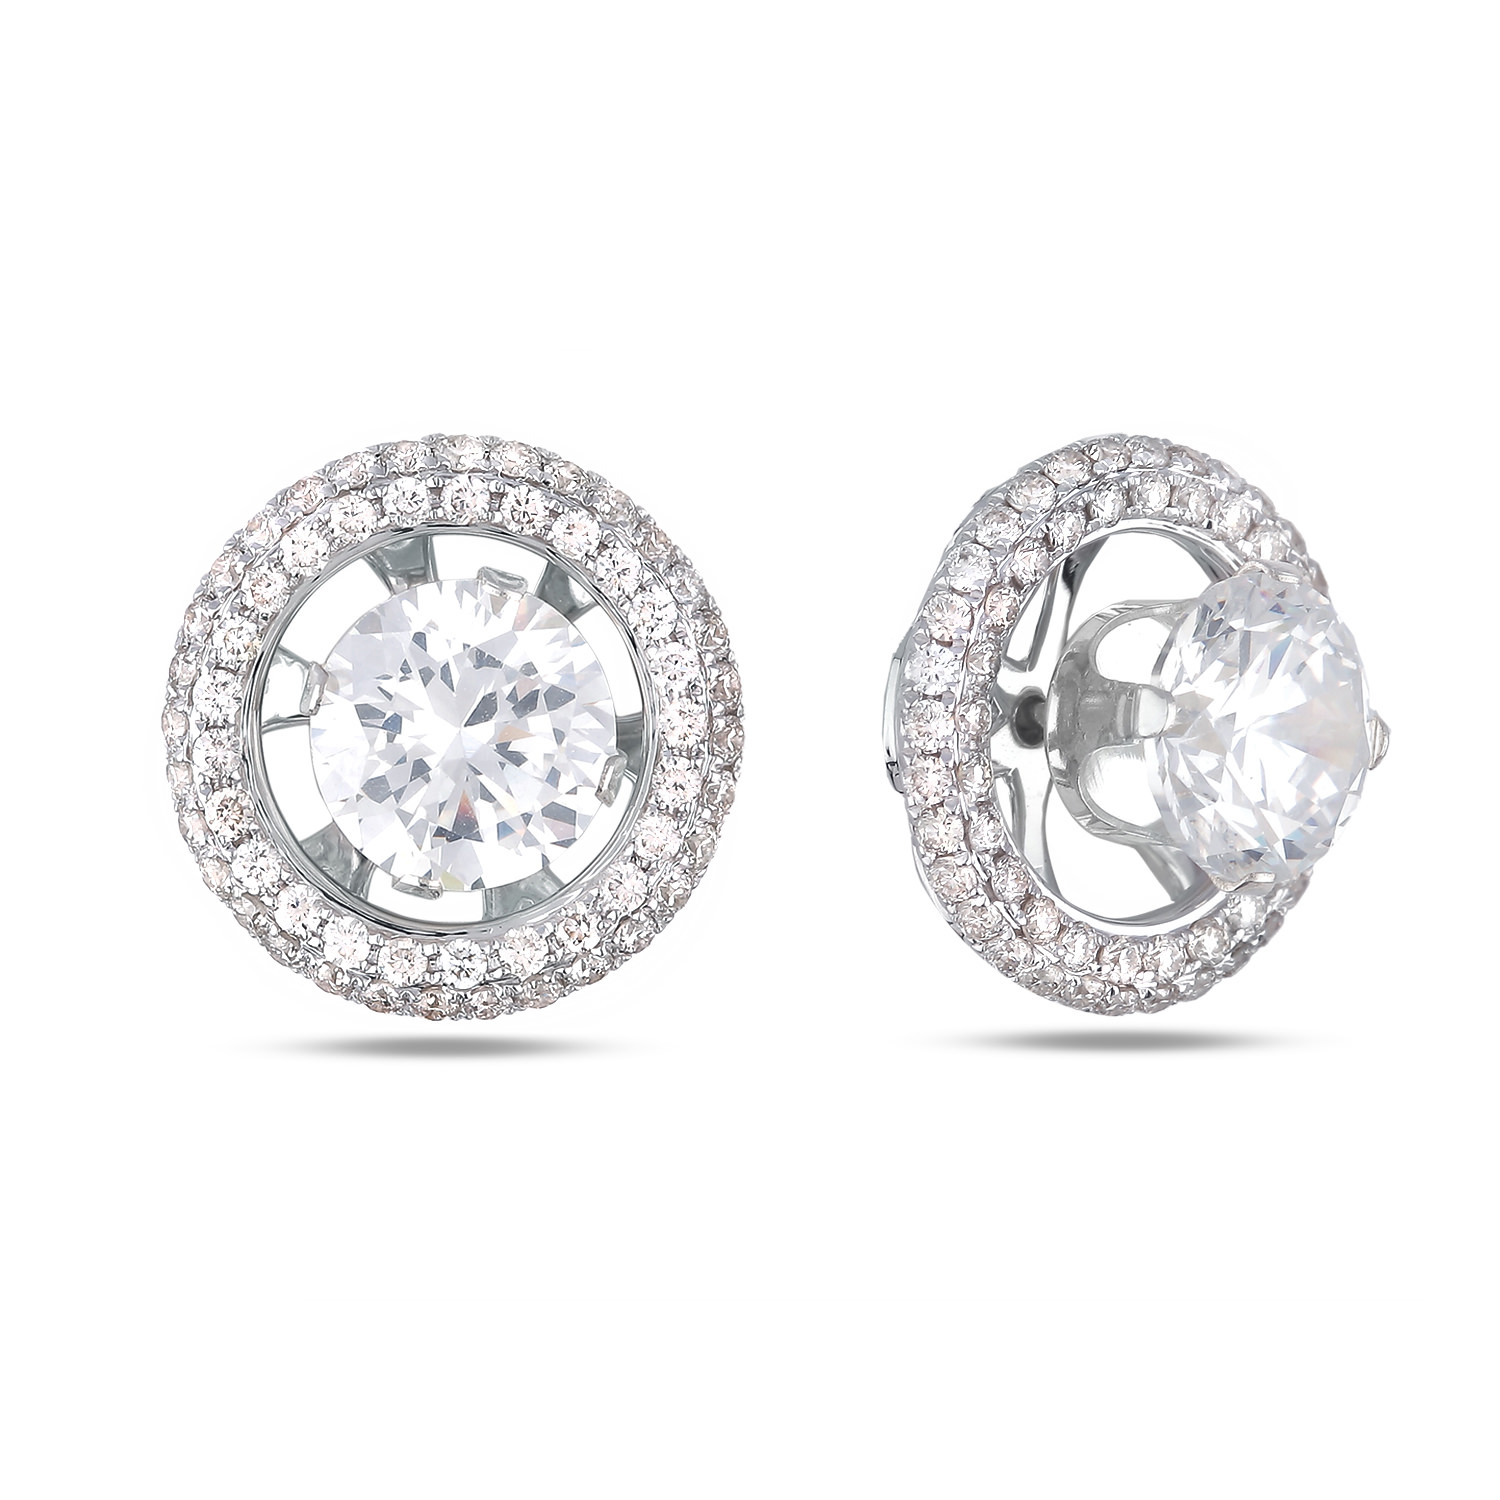 Diamond Stud Earrings SGE274 (Earrings)